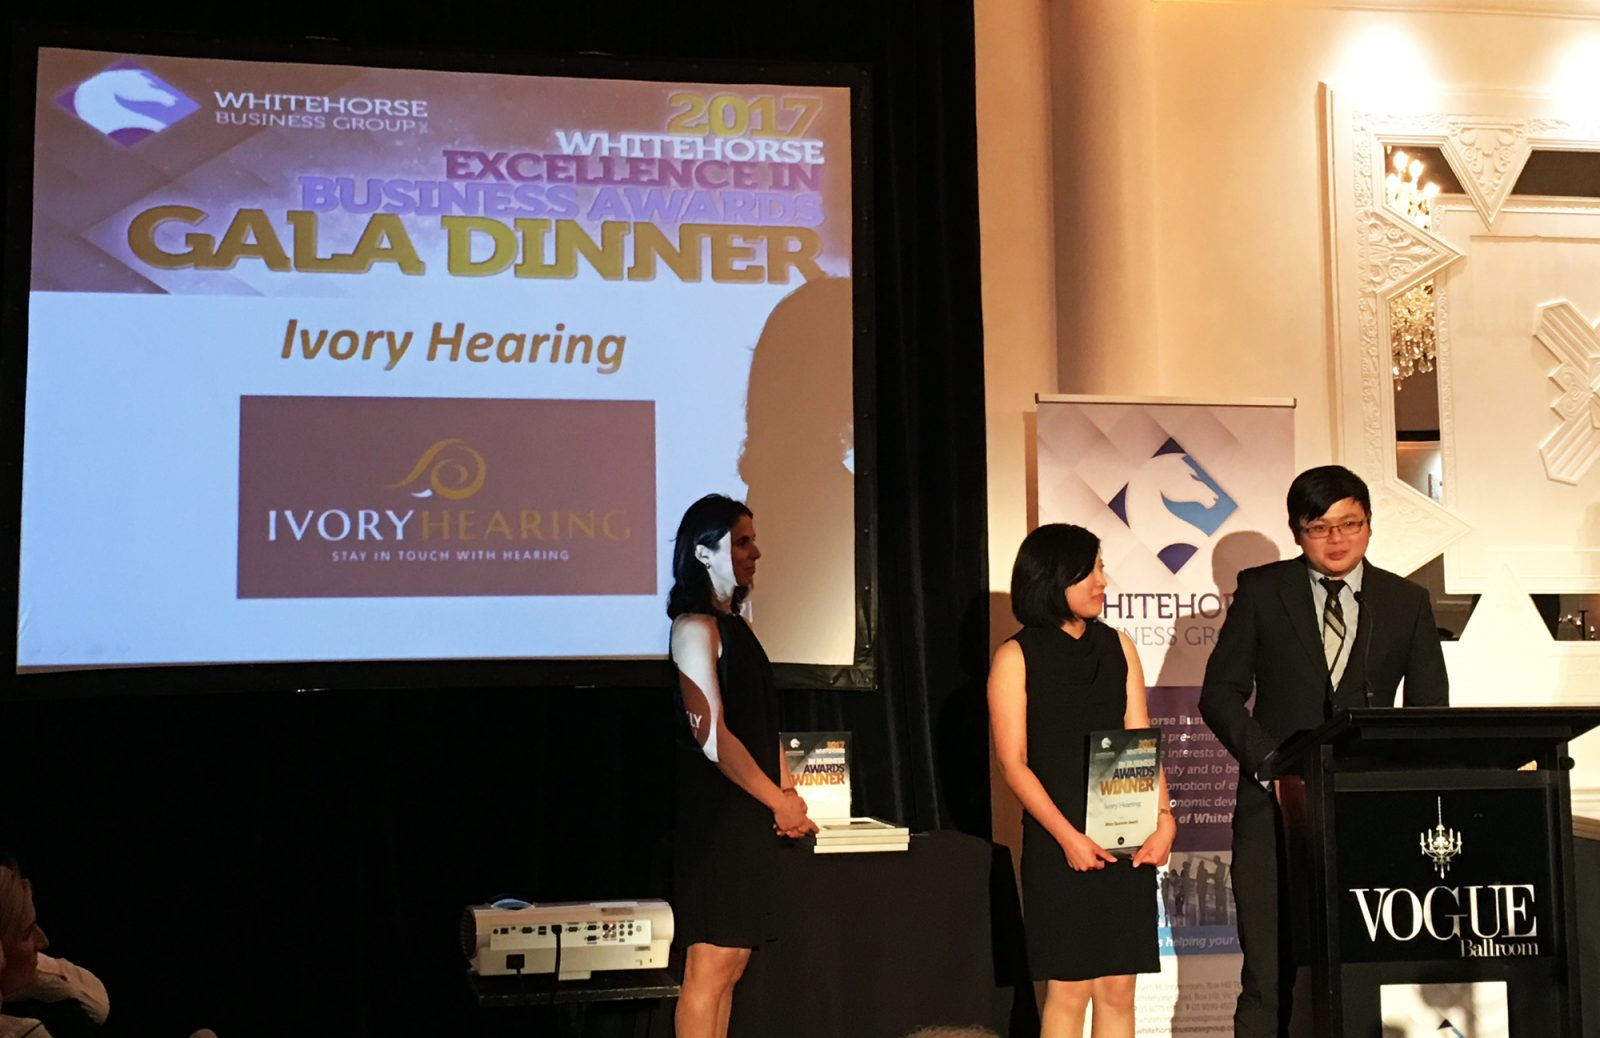 Whitehorse Excellence in Business Awards3